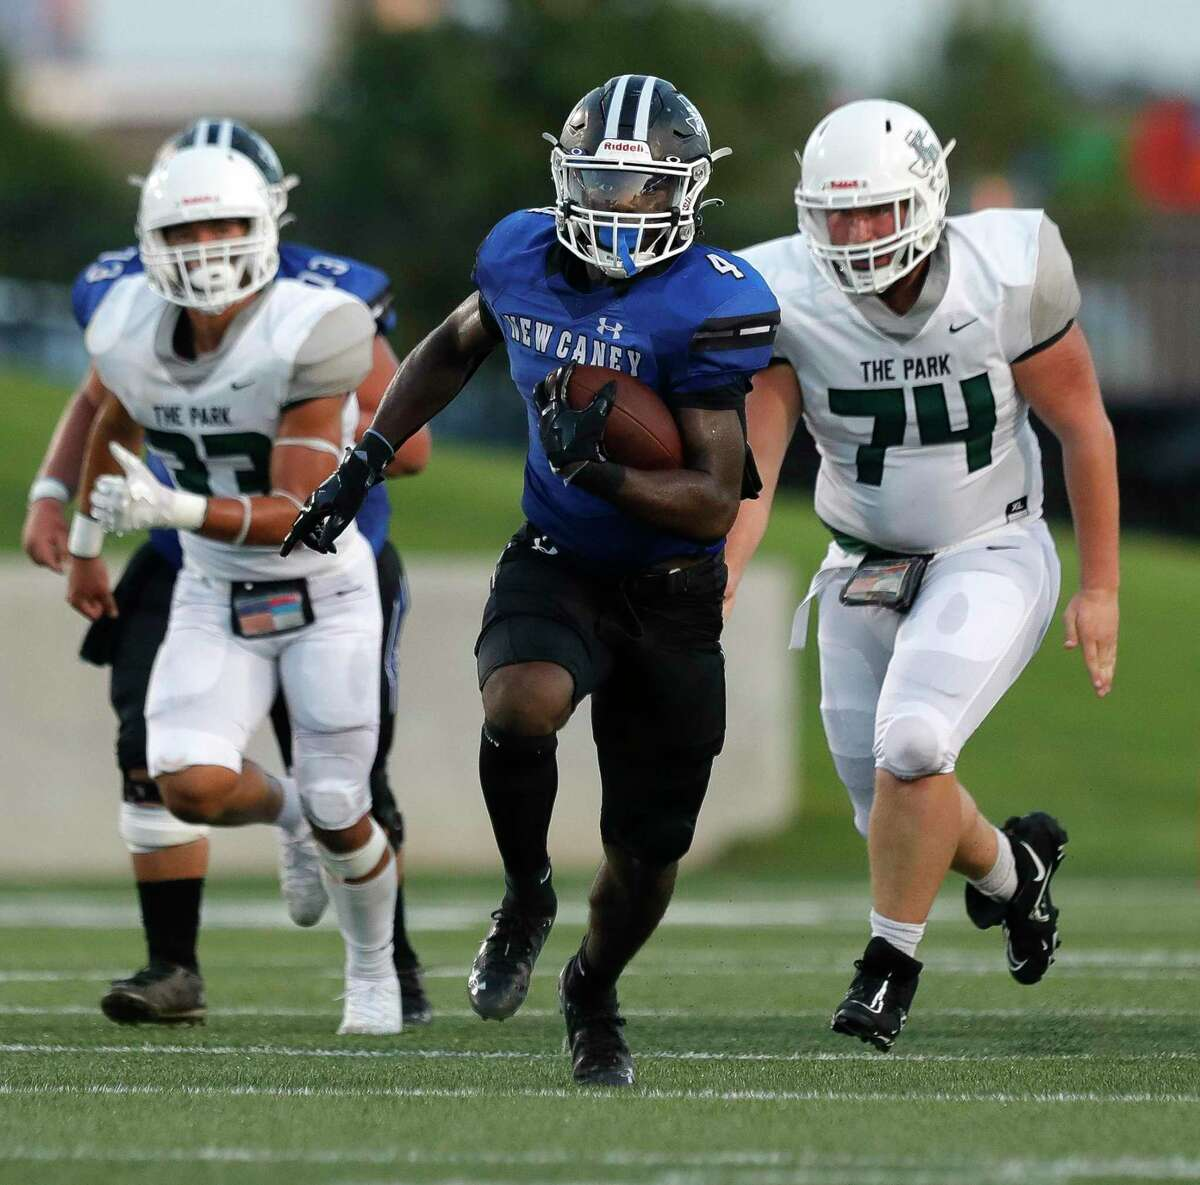 New Caney running back Arkez Gomez (4), shown here last week against Kingwood Park, had a 30-yard touchdown run against Porter Friday night.